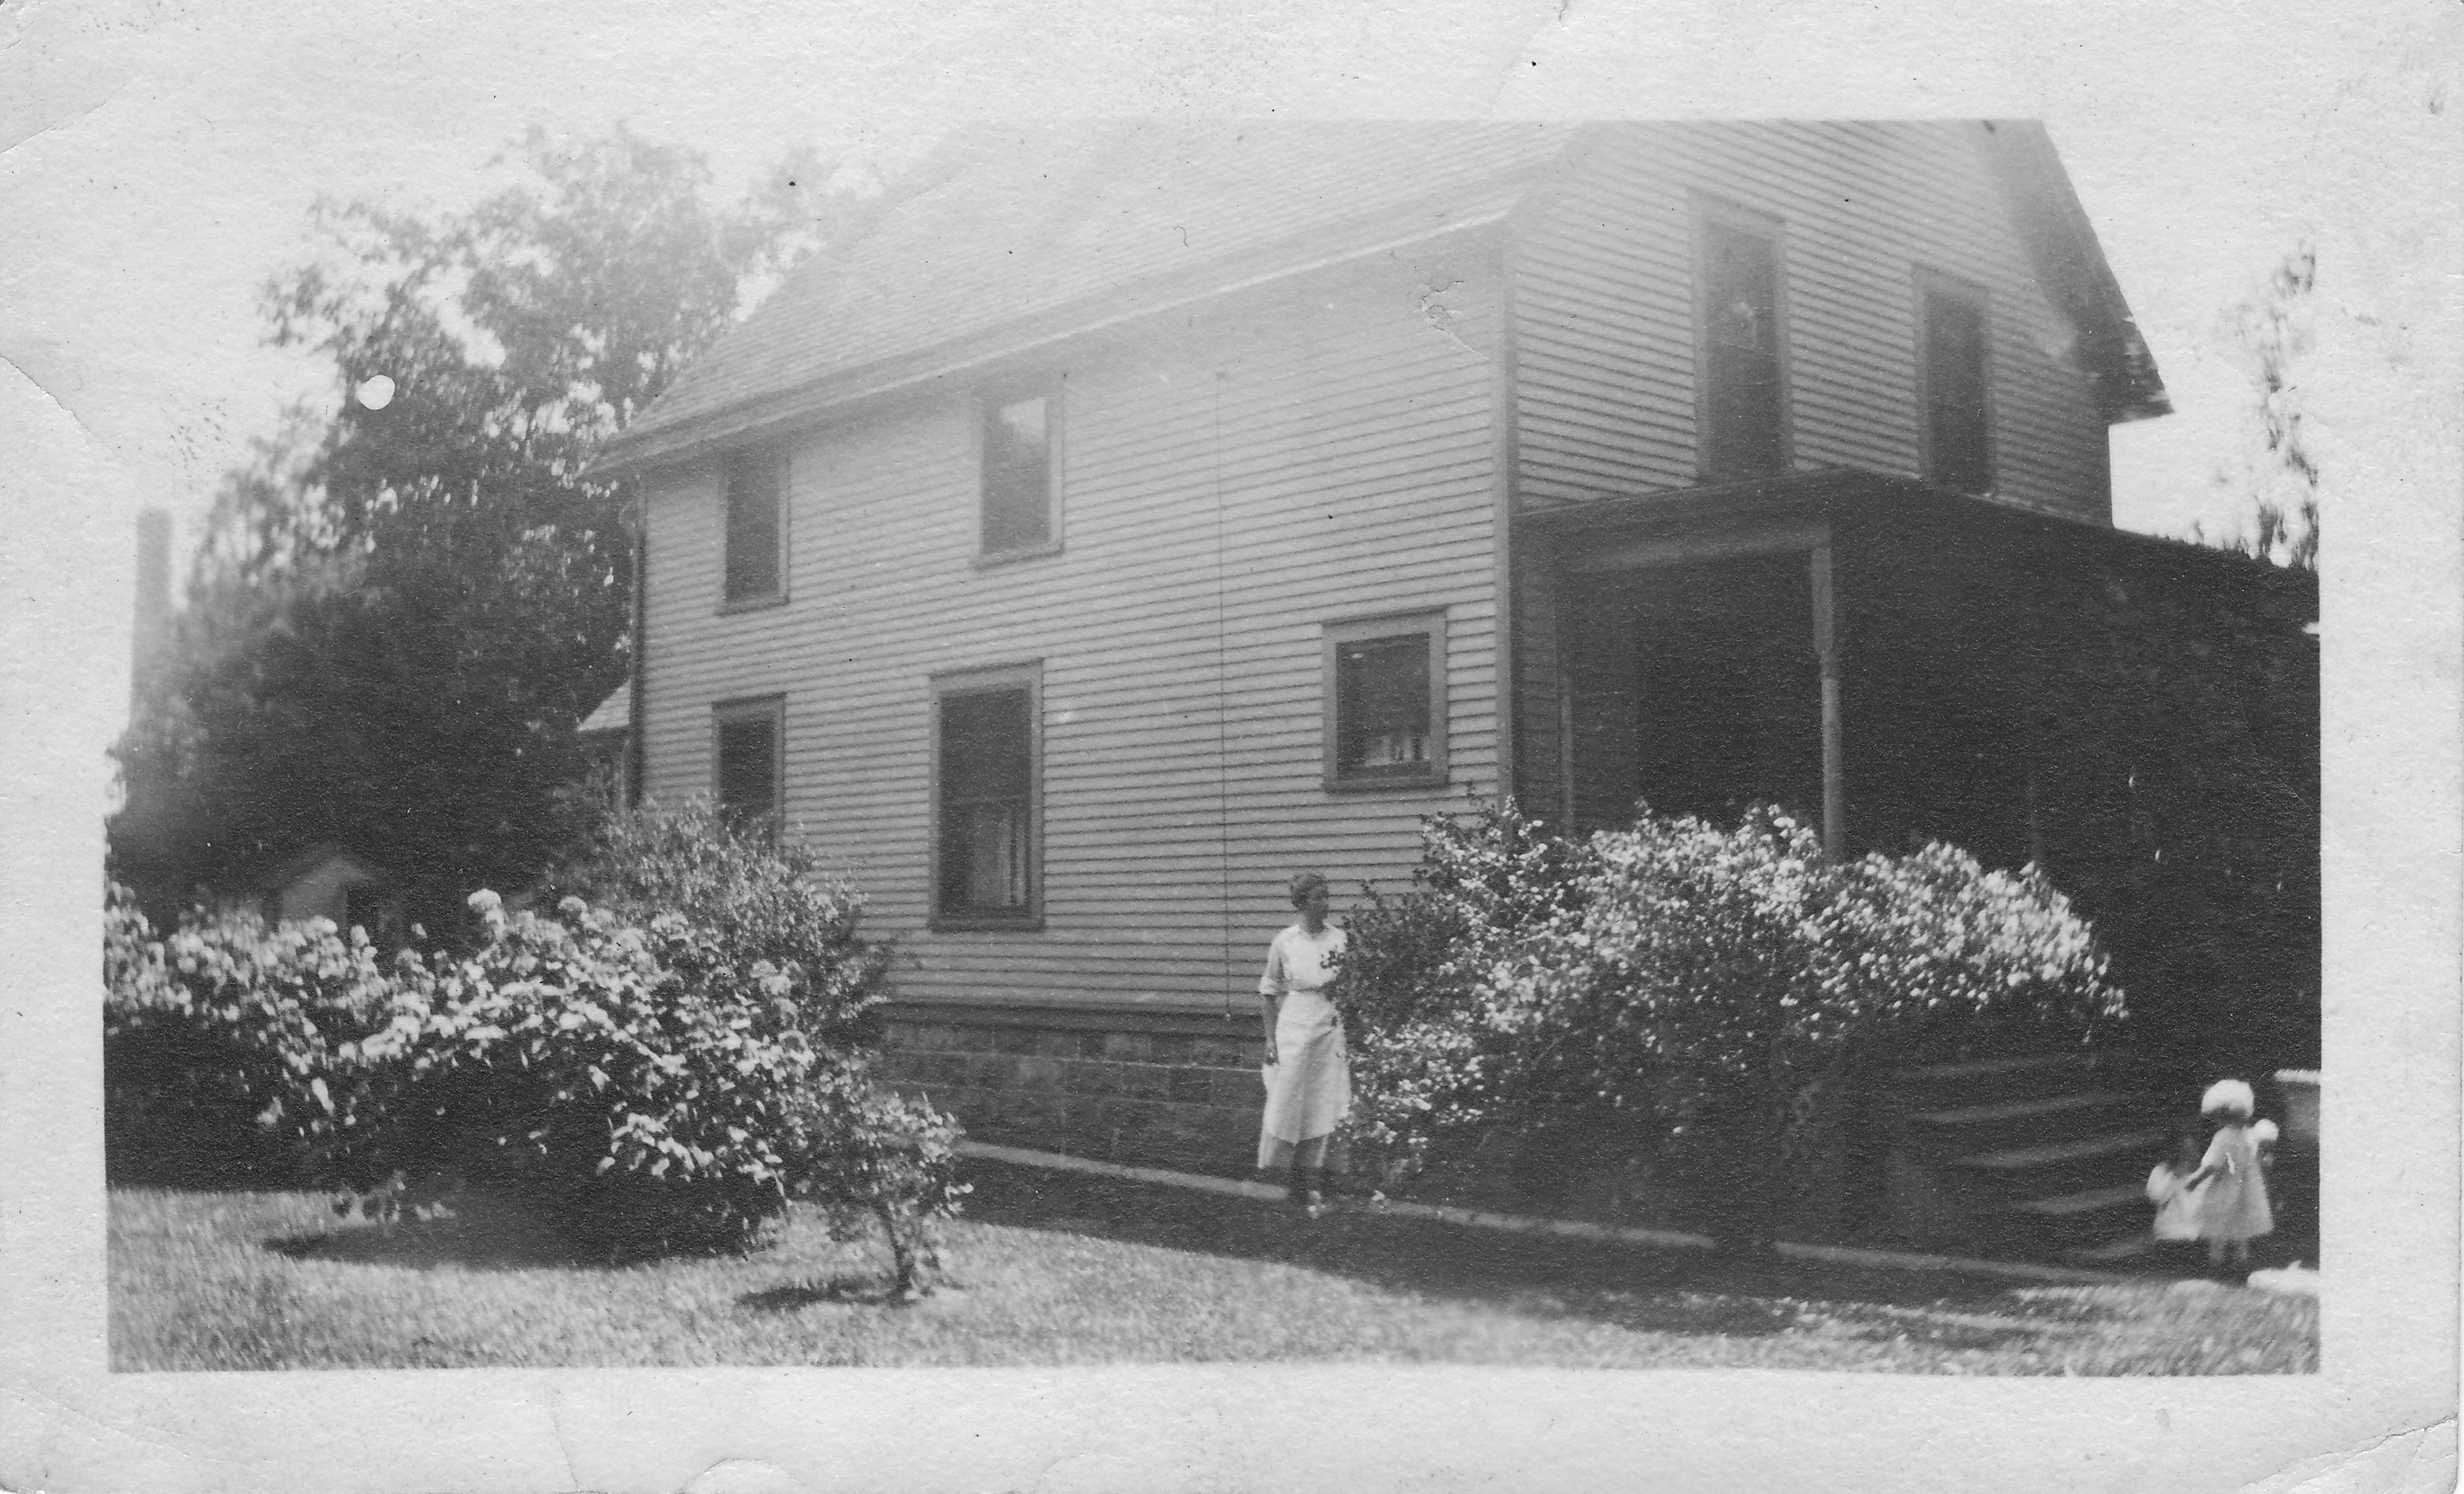 Gauss House circa 1913 - this old house used natural ventilation for cooling, but over 1200 lbs of dirty coal per month for heating and cooking.